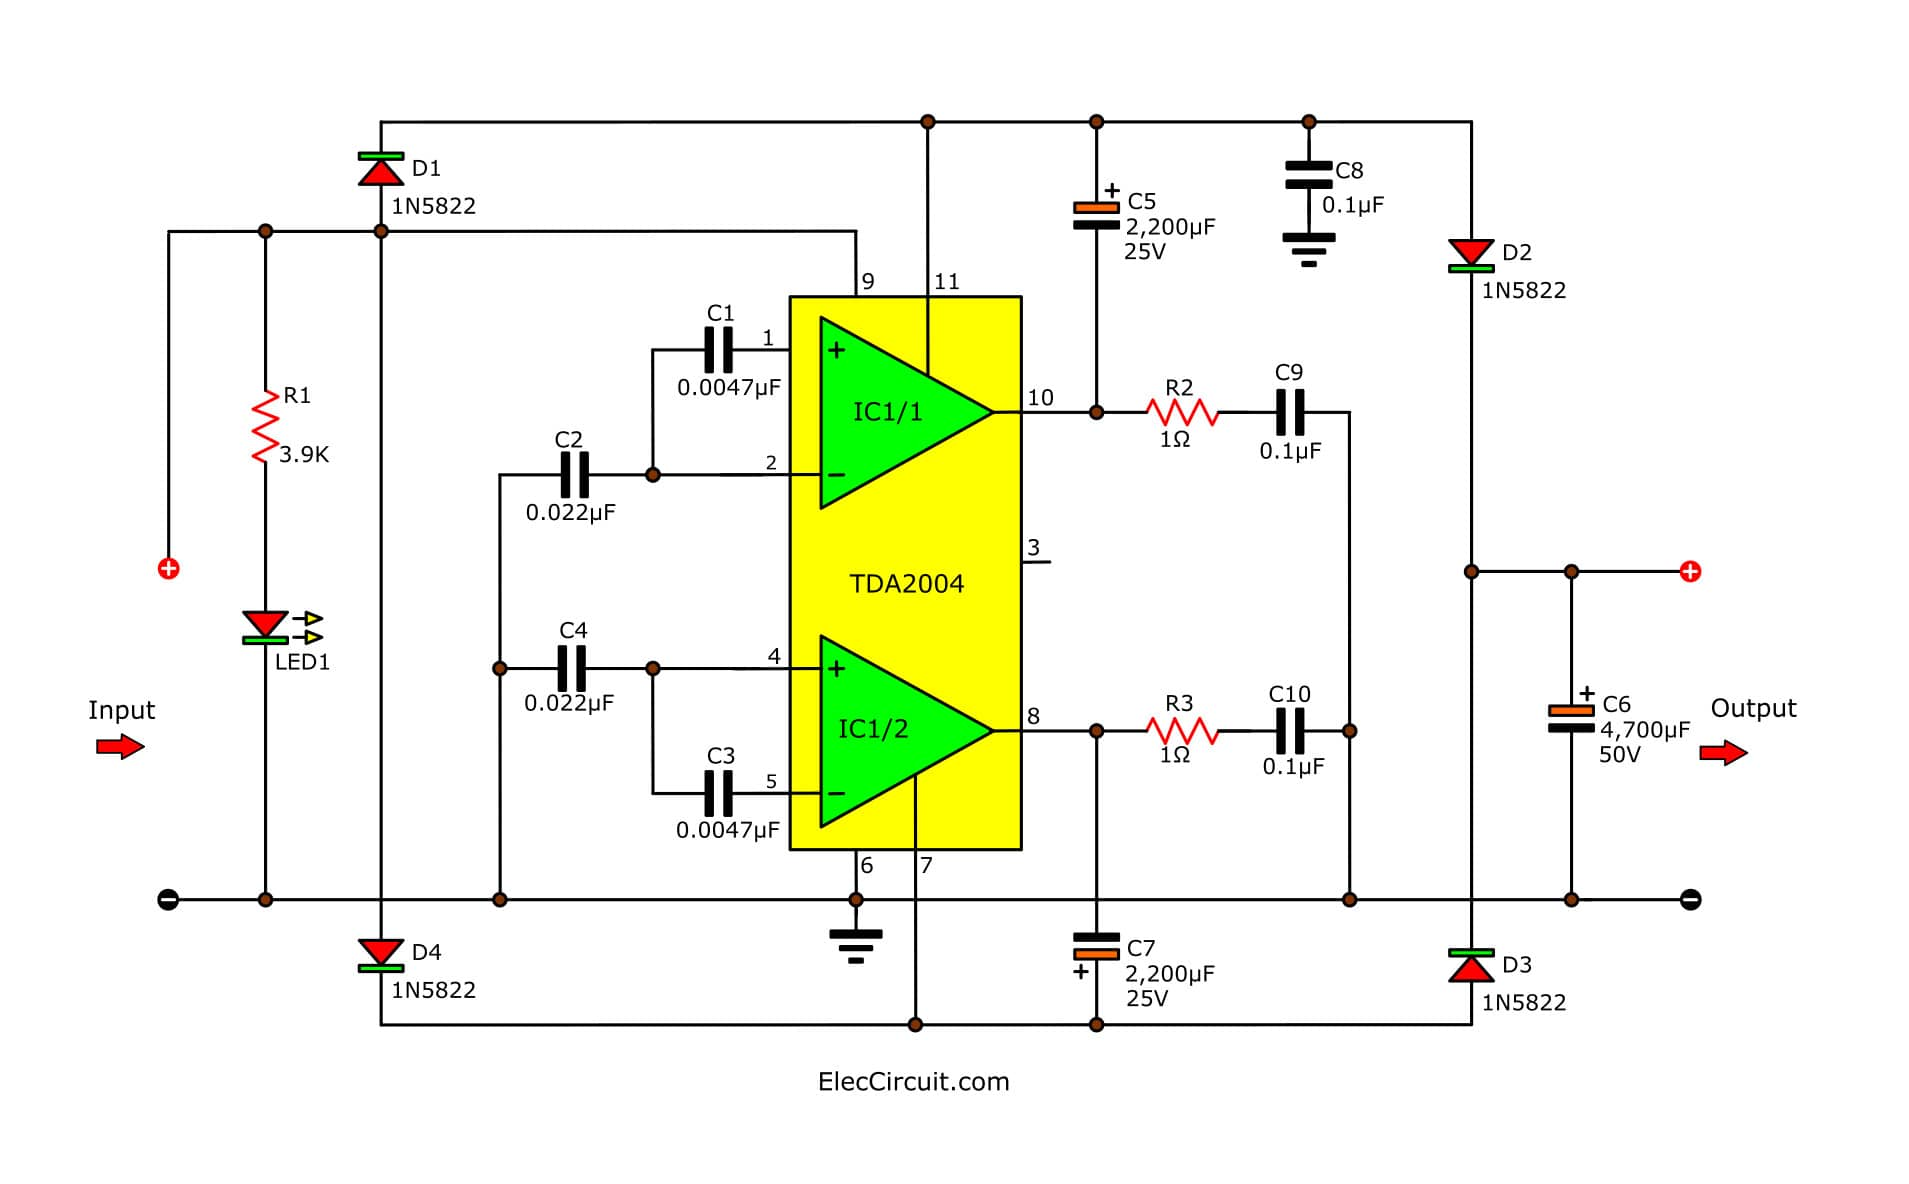 hight resolution of simple 12v to 24v step up converter circuit using tda2004 eleccircuit build a 12v to 24v dcdc converter circuit diagram electronic